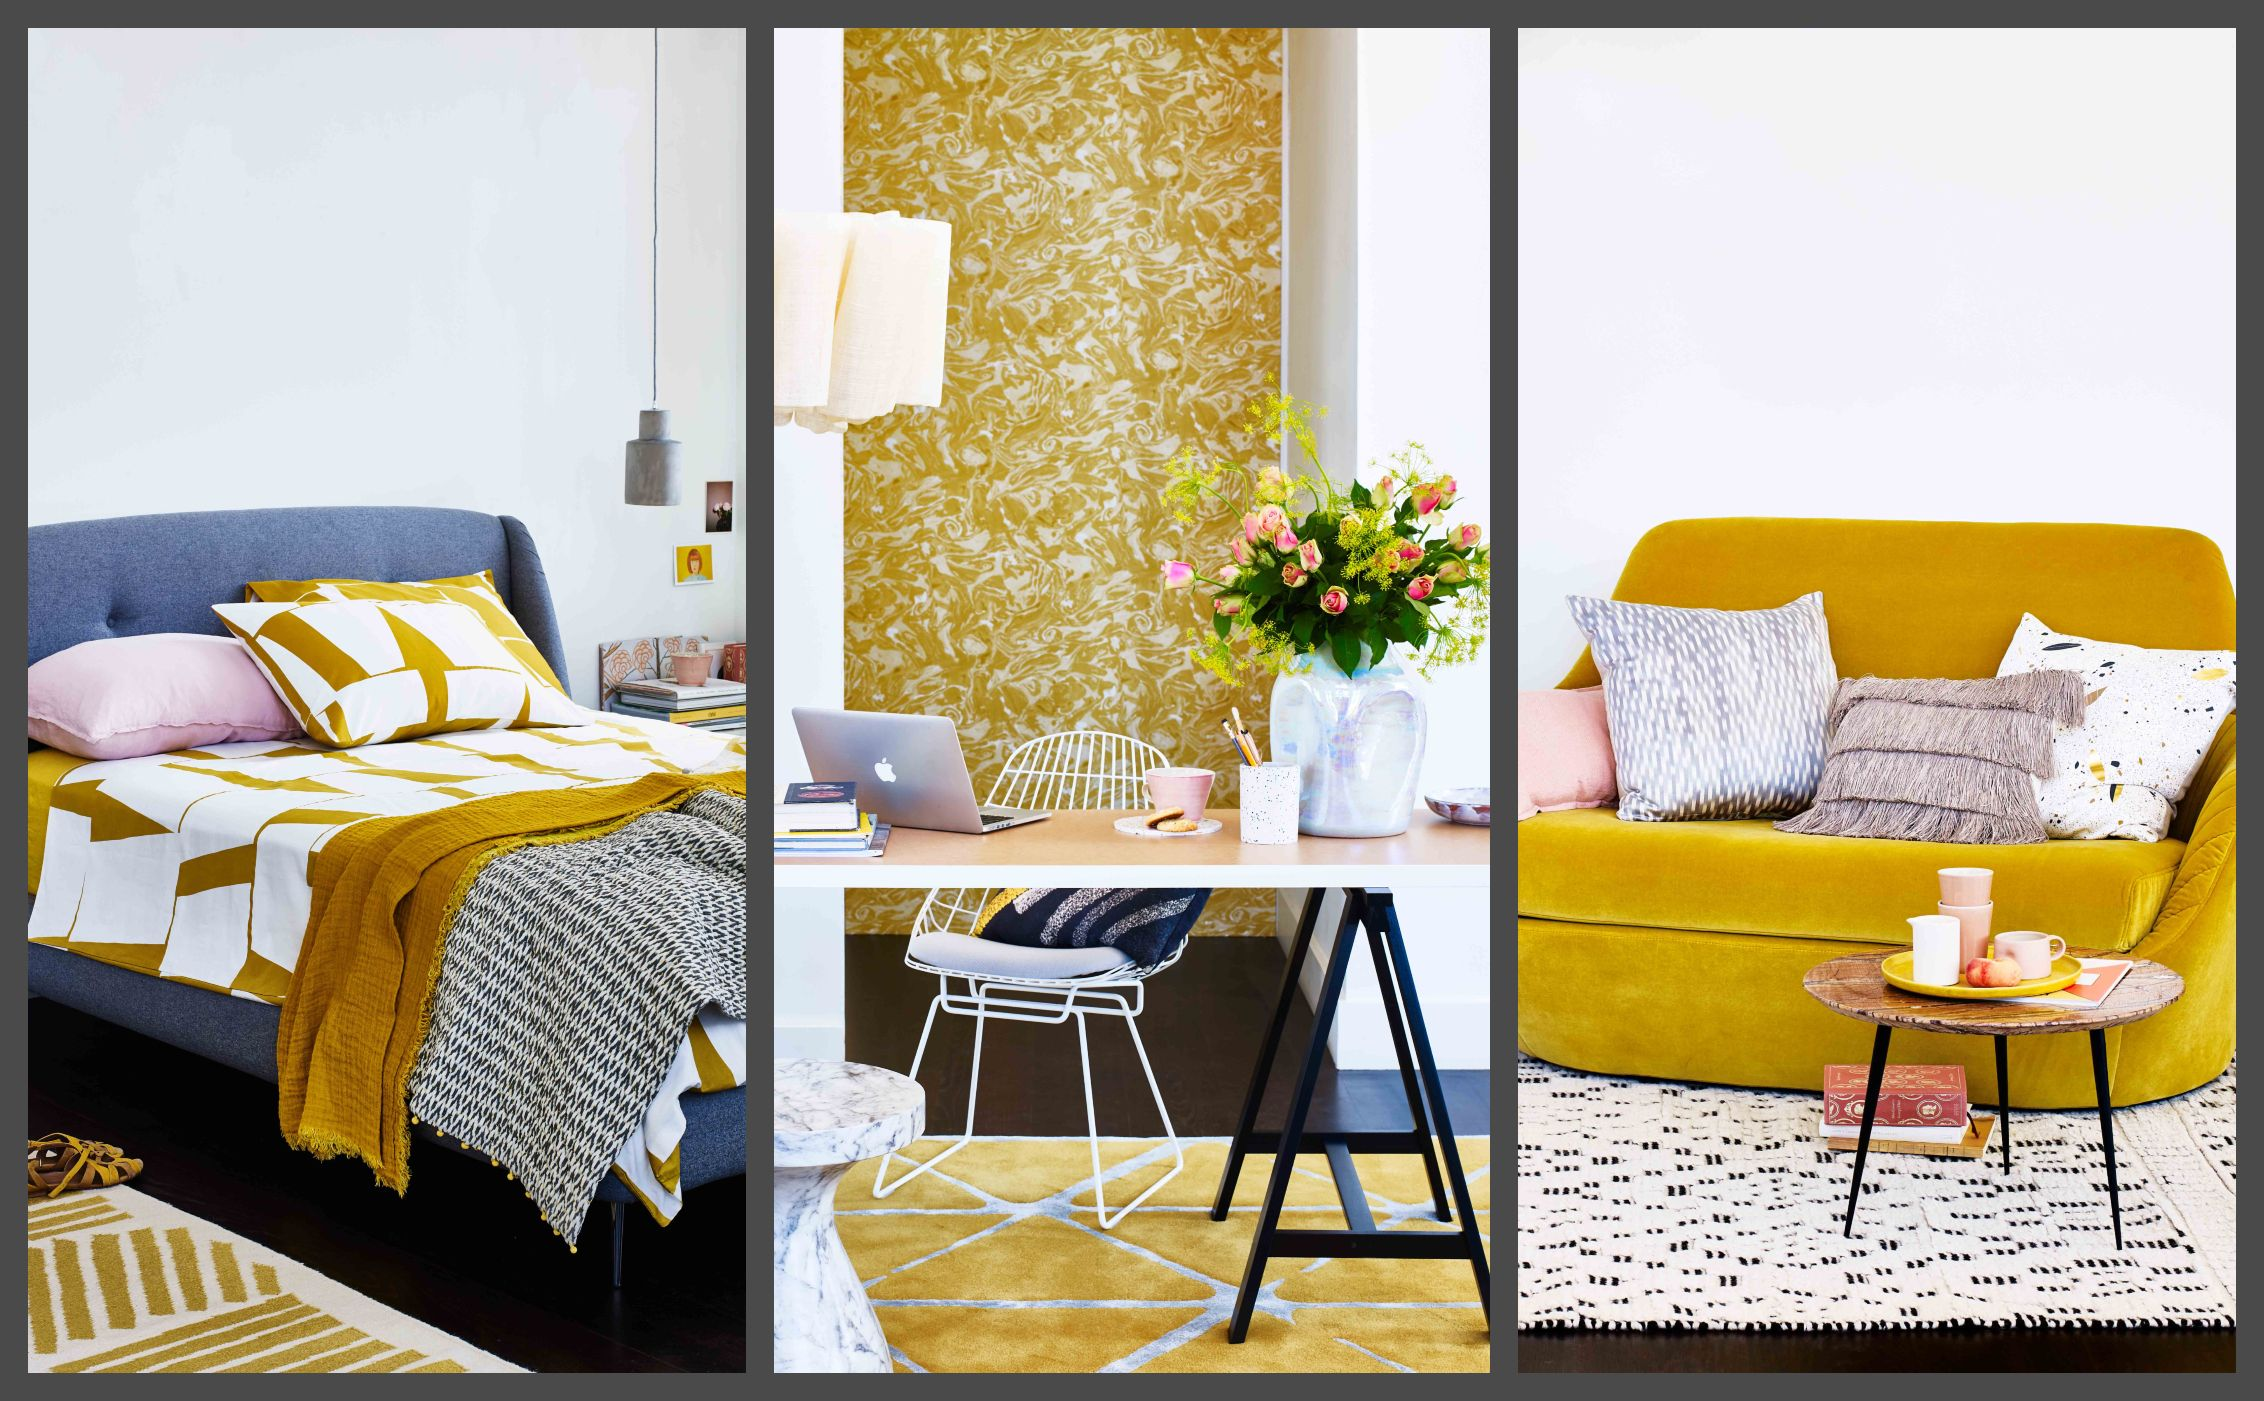 8 Stylish Ways To Introduce Ochre Into A Neutral Room - Room Decor